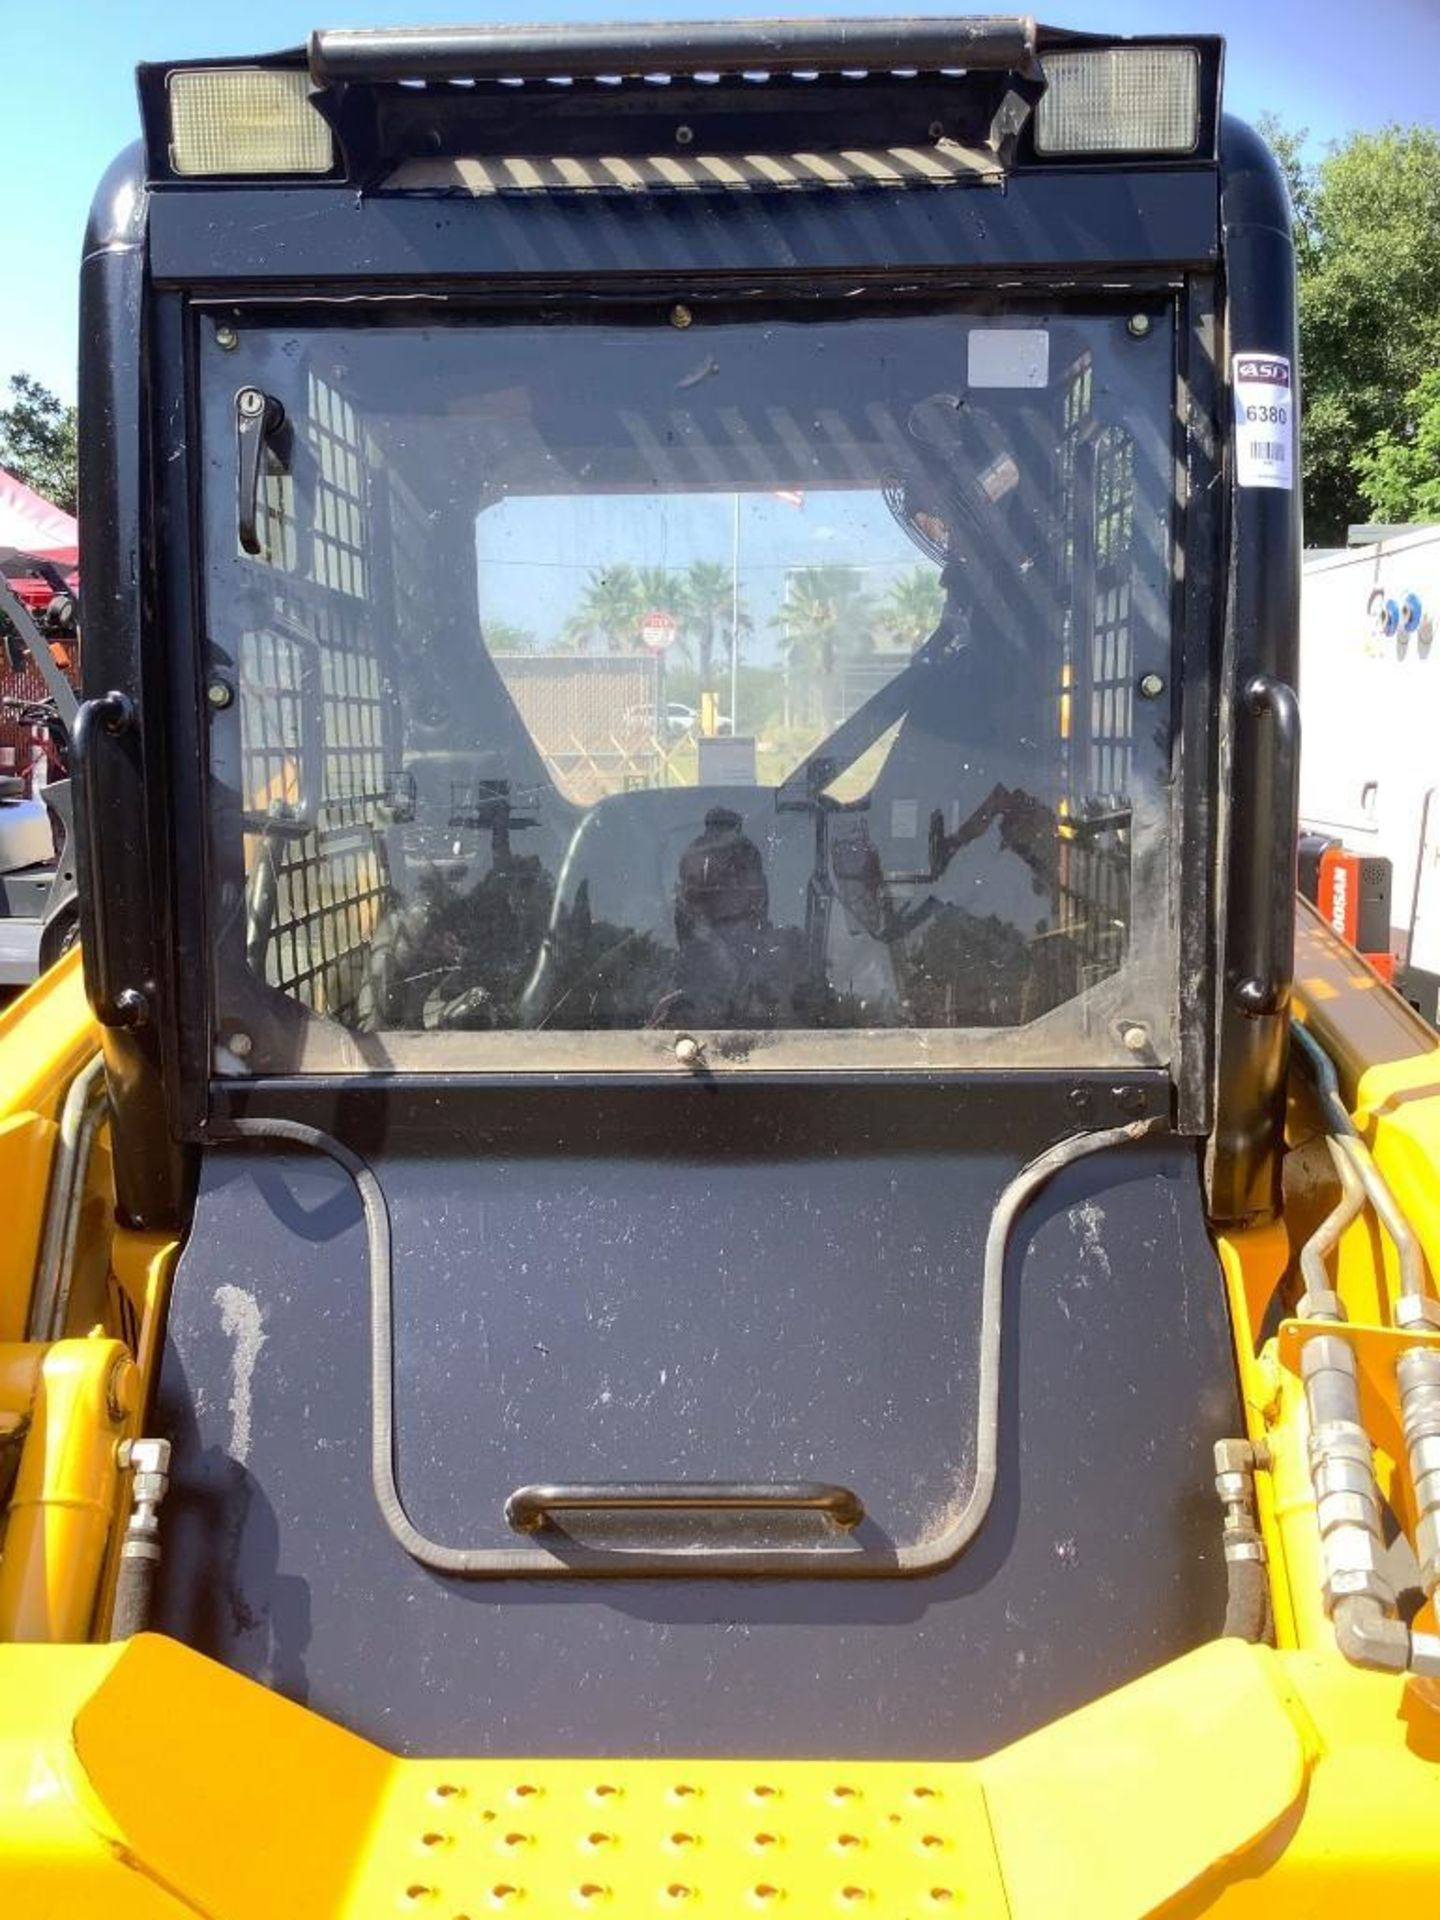 JOHN DEERE SKIDSTEER MODEL 315, DIESEL, GRAPPLE ATTACHMENT, SOLID TIRES, AUX HYDRAULIC, ENCLOSED CAB - Image 10 of 15